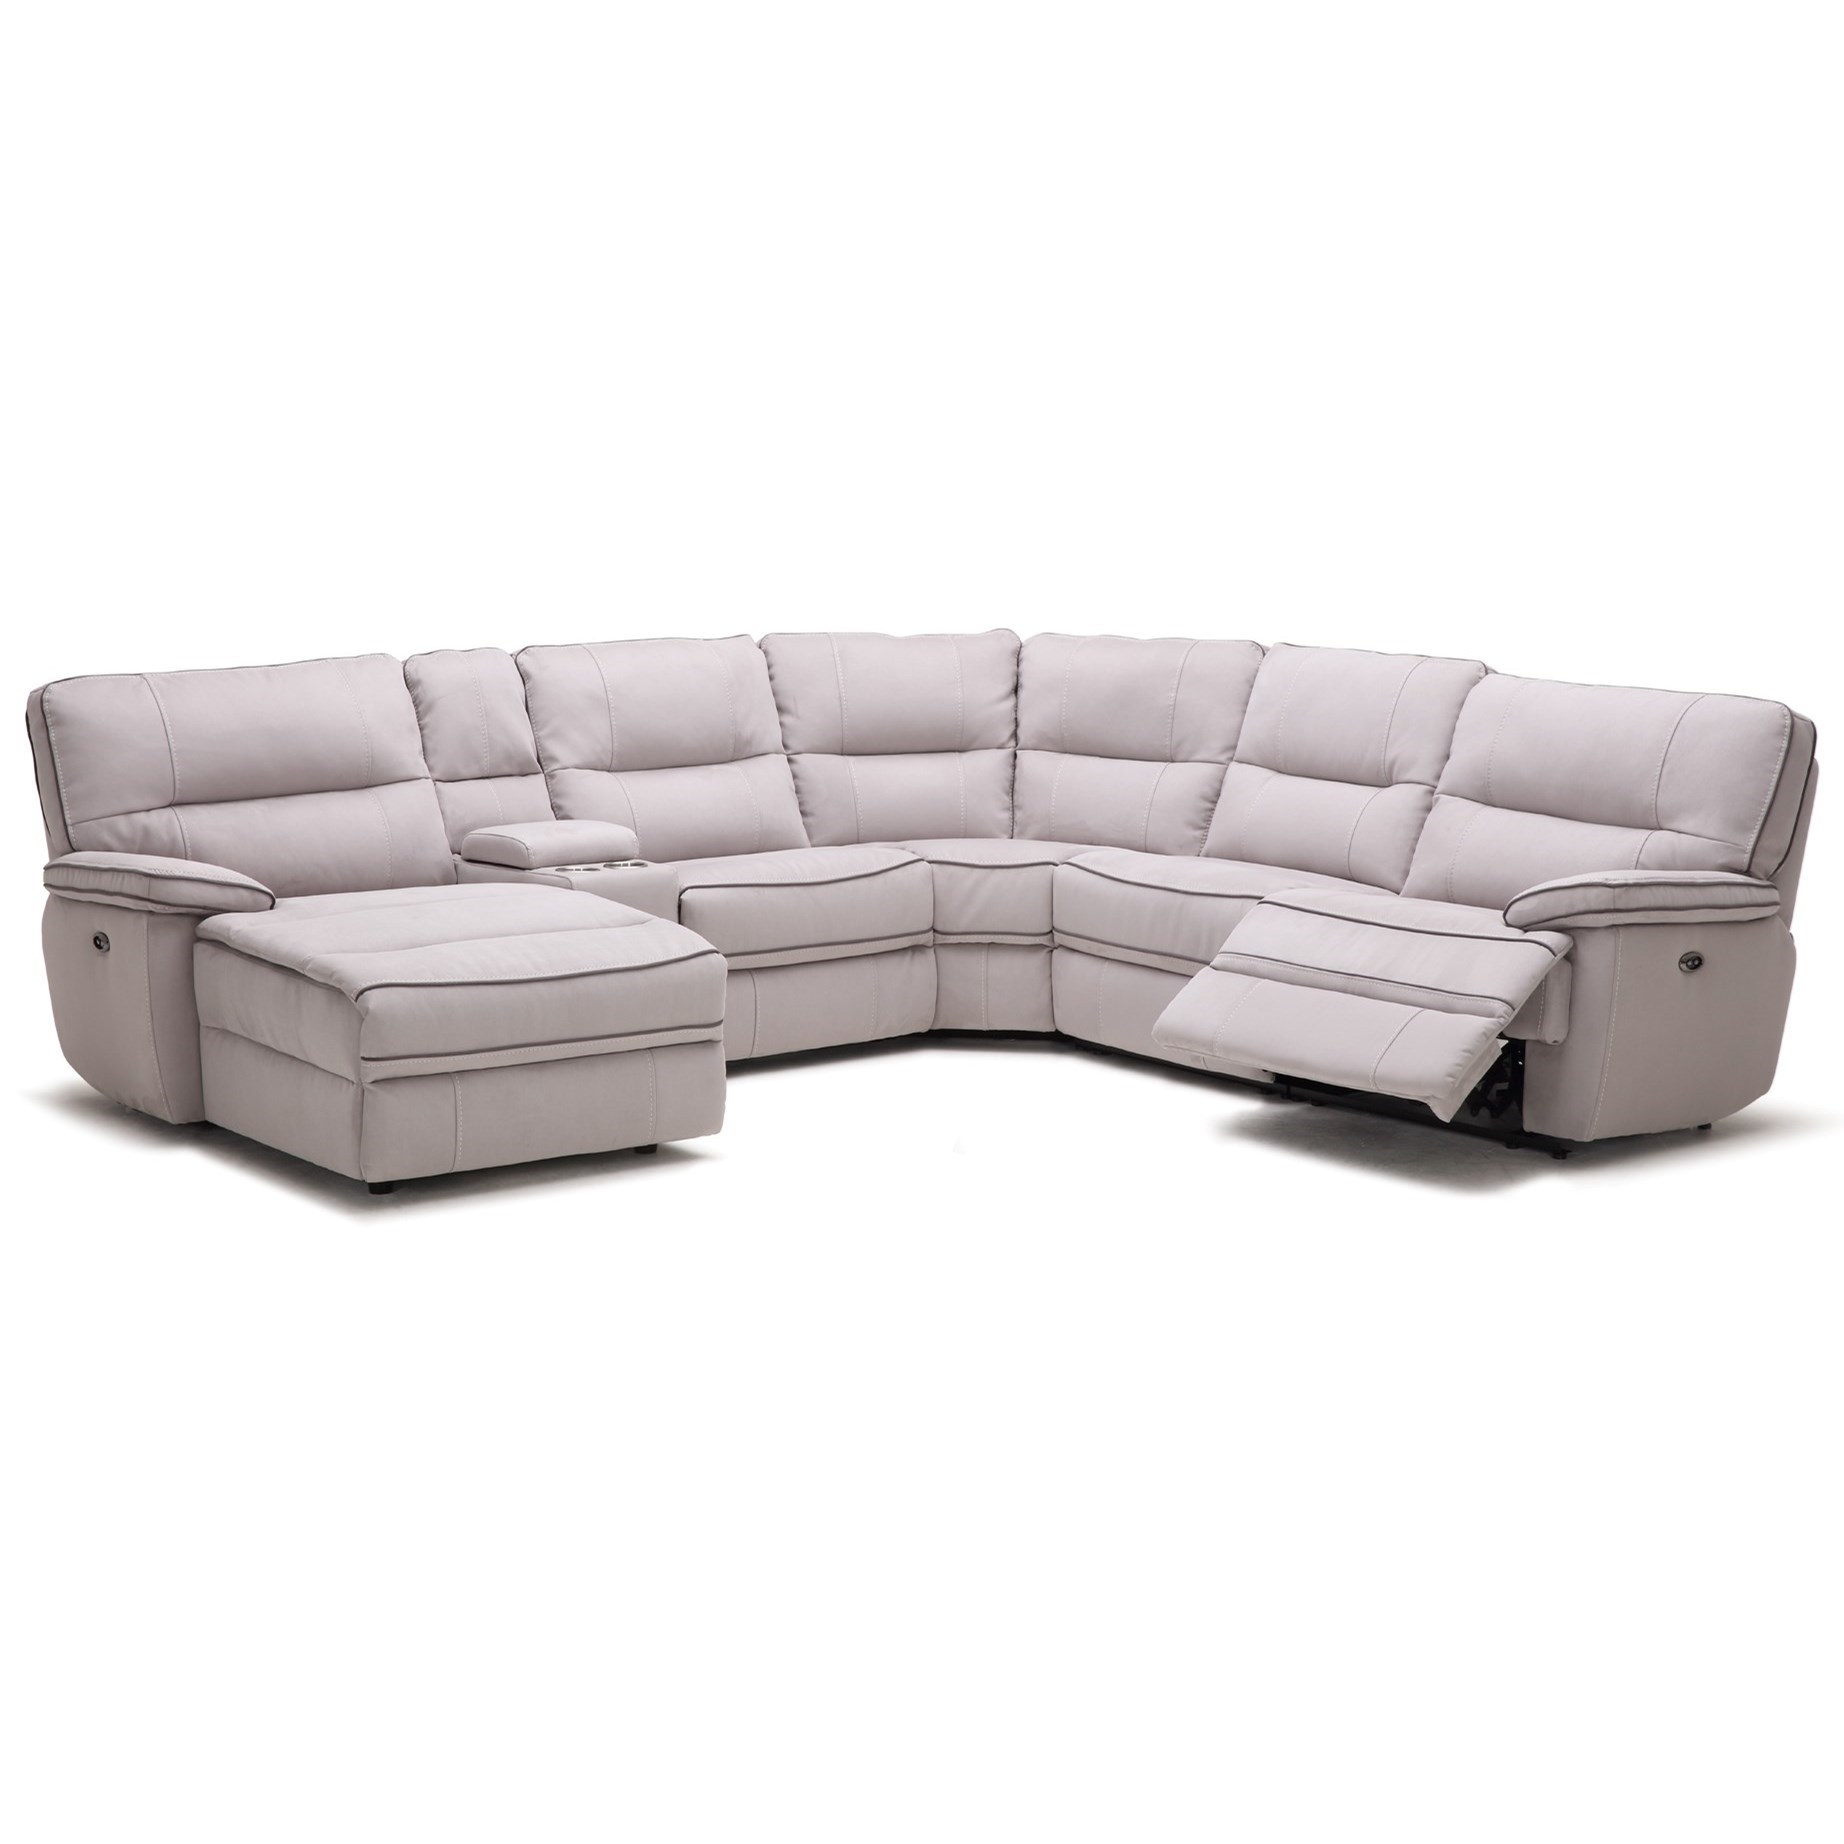 kuka home km019 six piece power reclining sectional sofa with rh wilsonhomefurnishings com